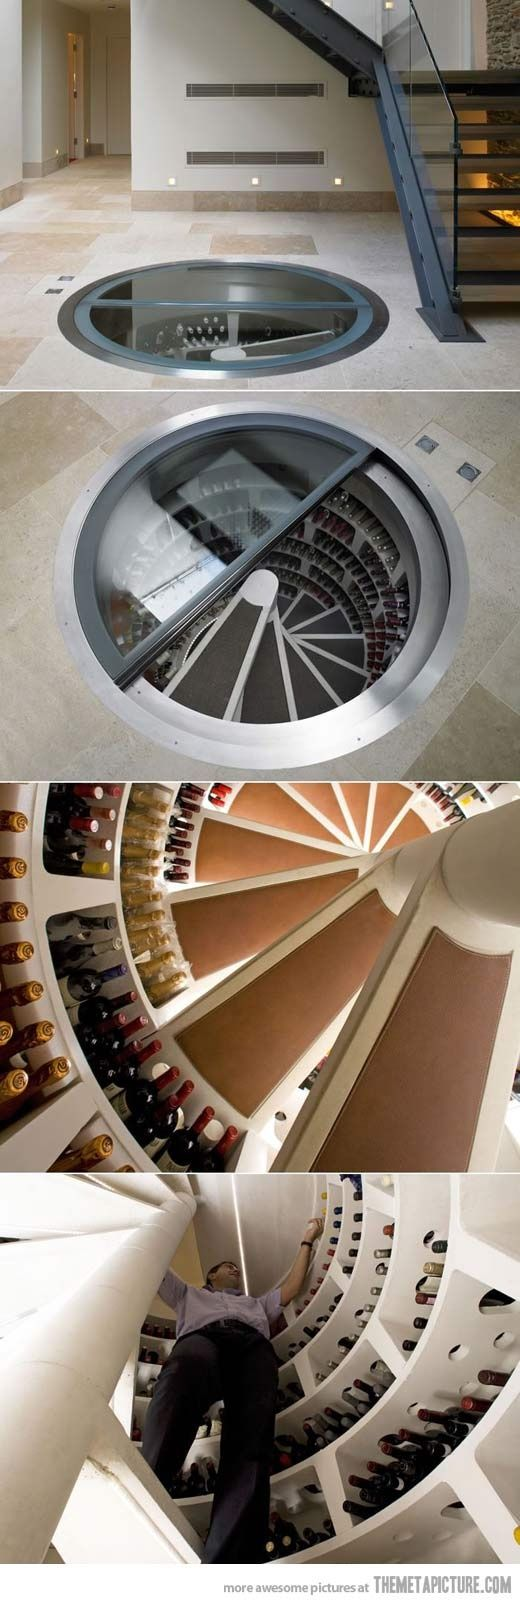 Not for a wine cellar...just a basement house maybe <3